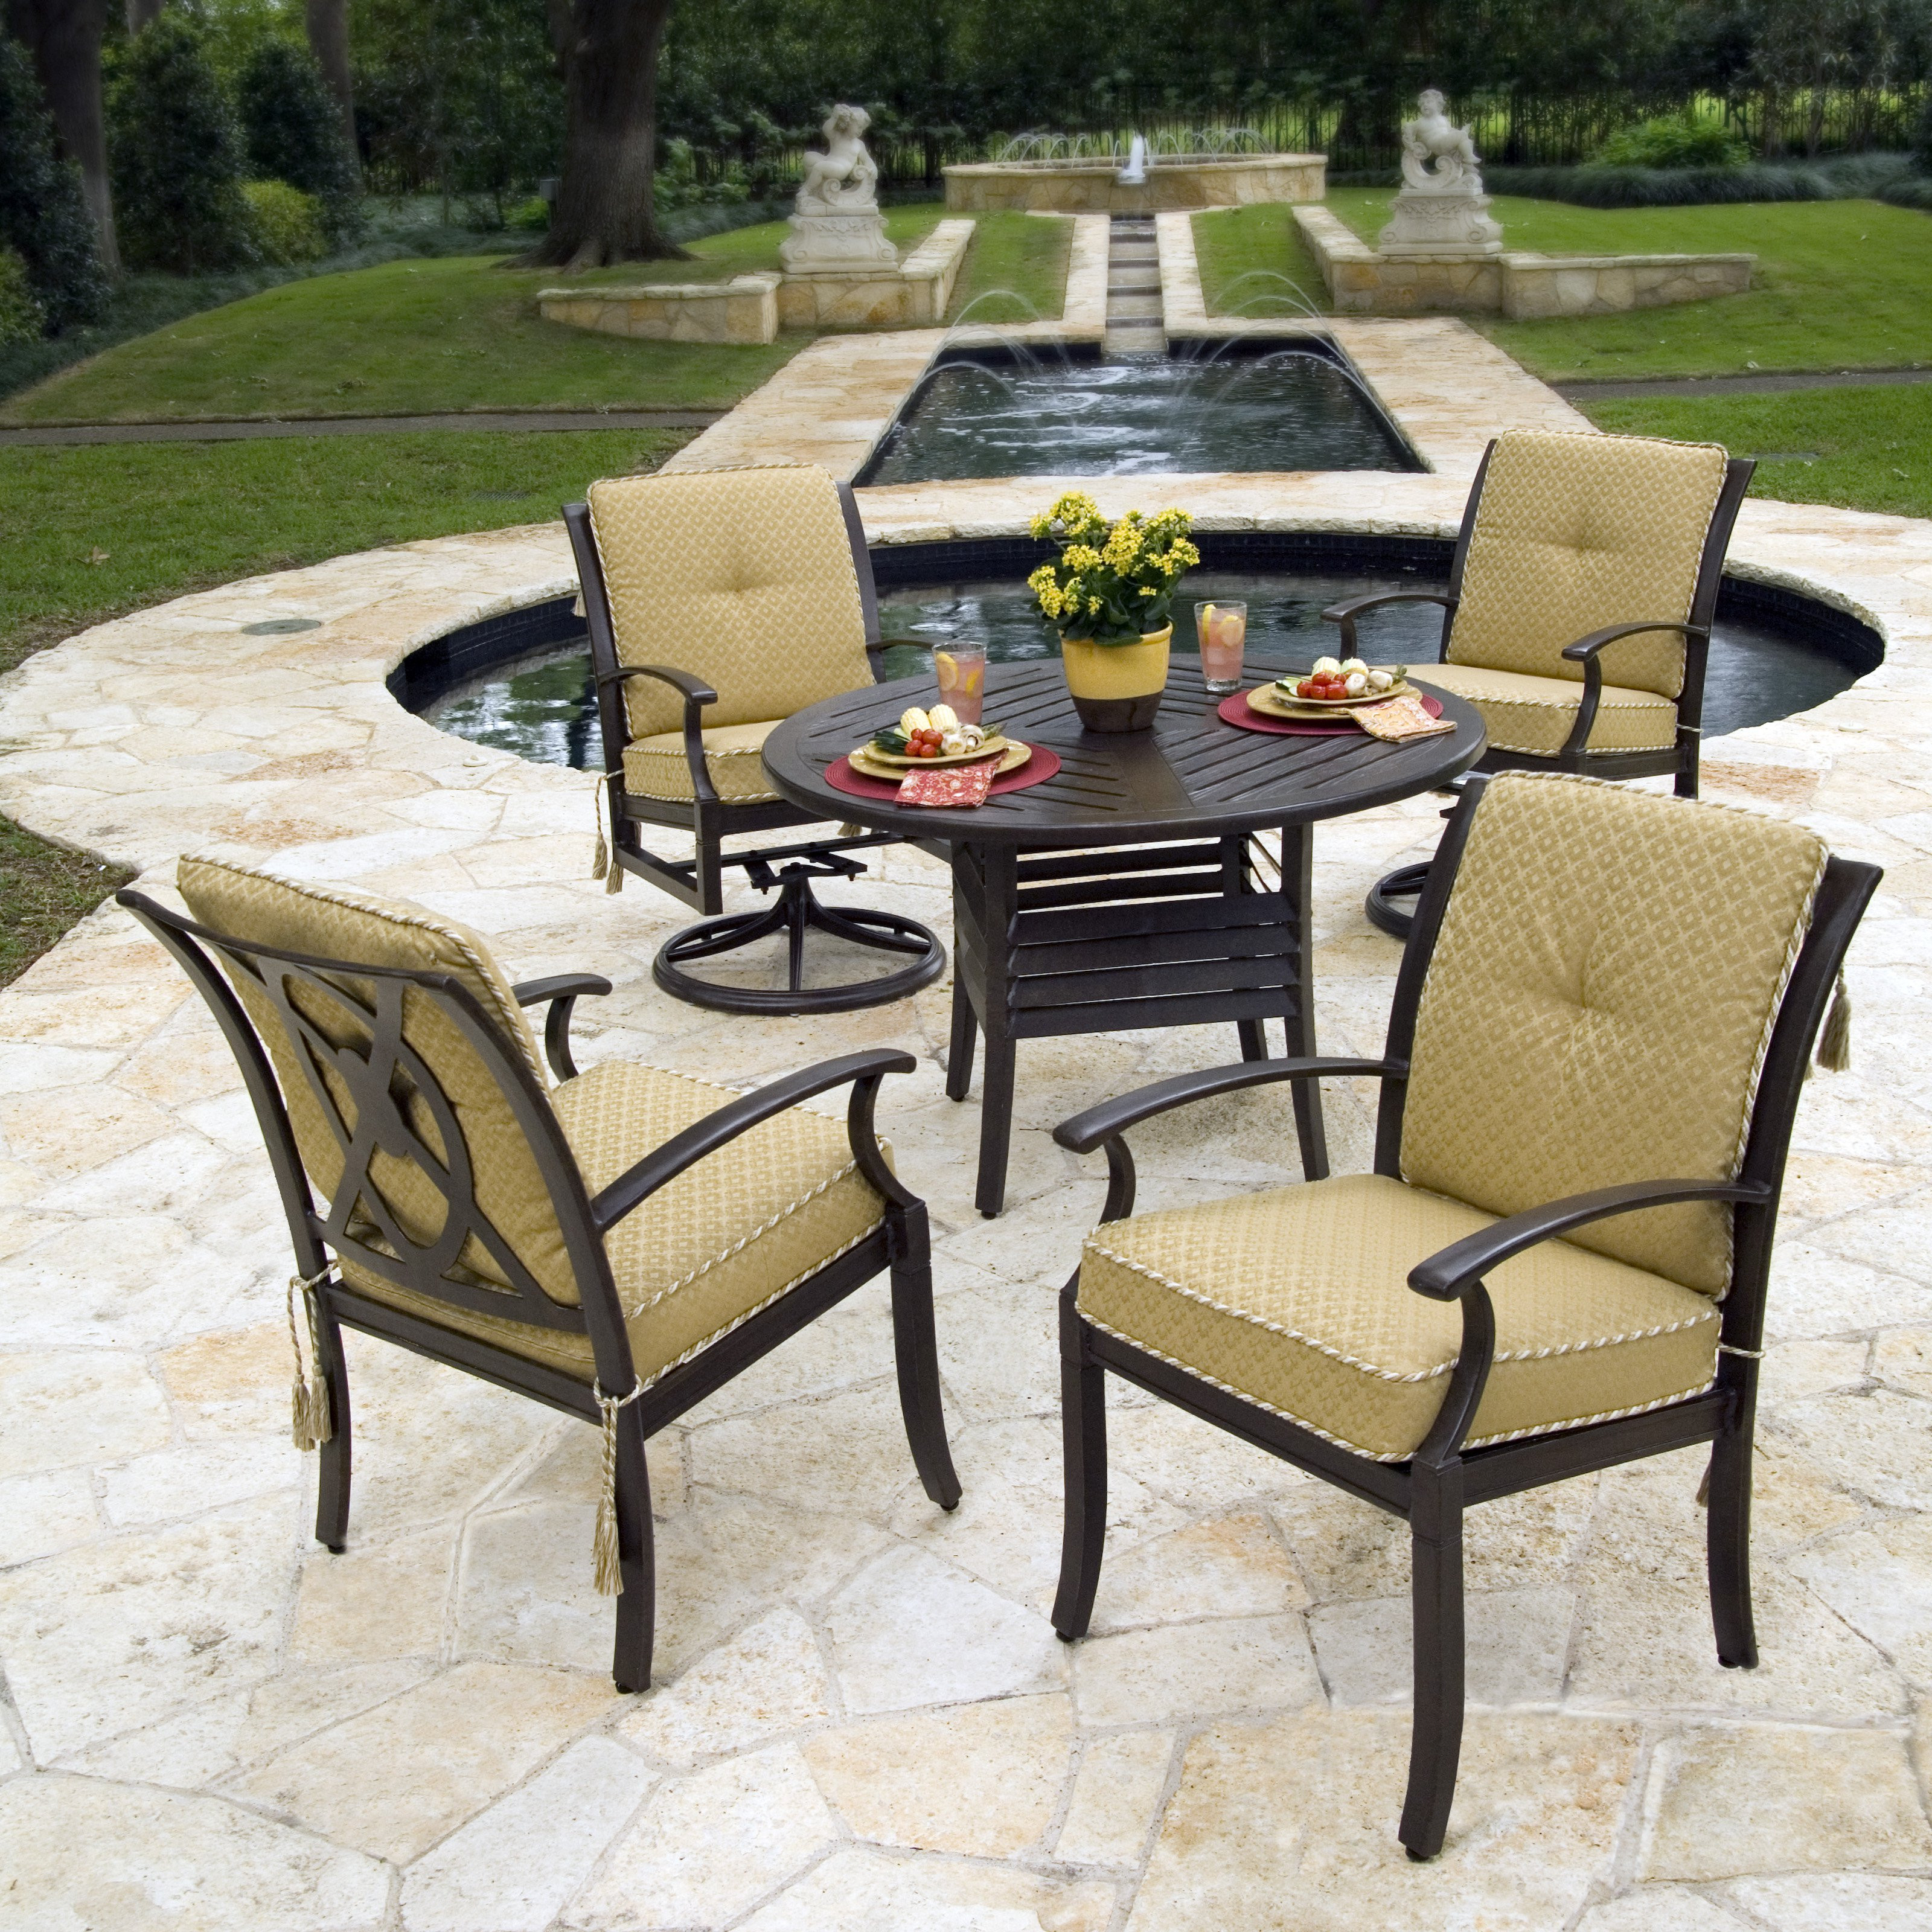 Best ideas about Menards Patio Furniture . Save or Pin Cool Exterior Design With Menards Patio Furniture As Sets Now.